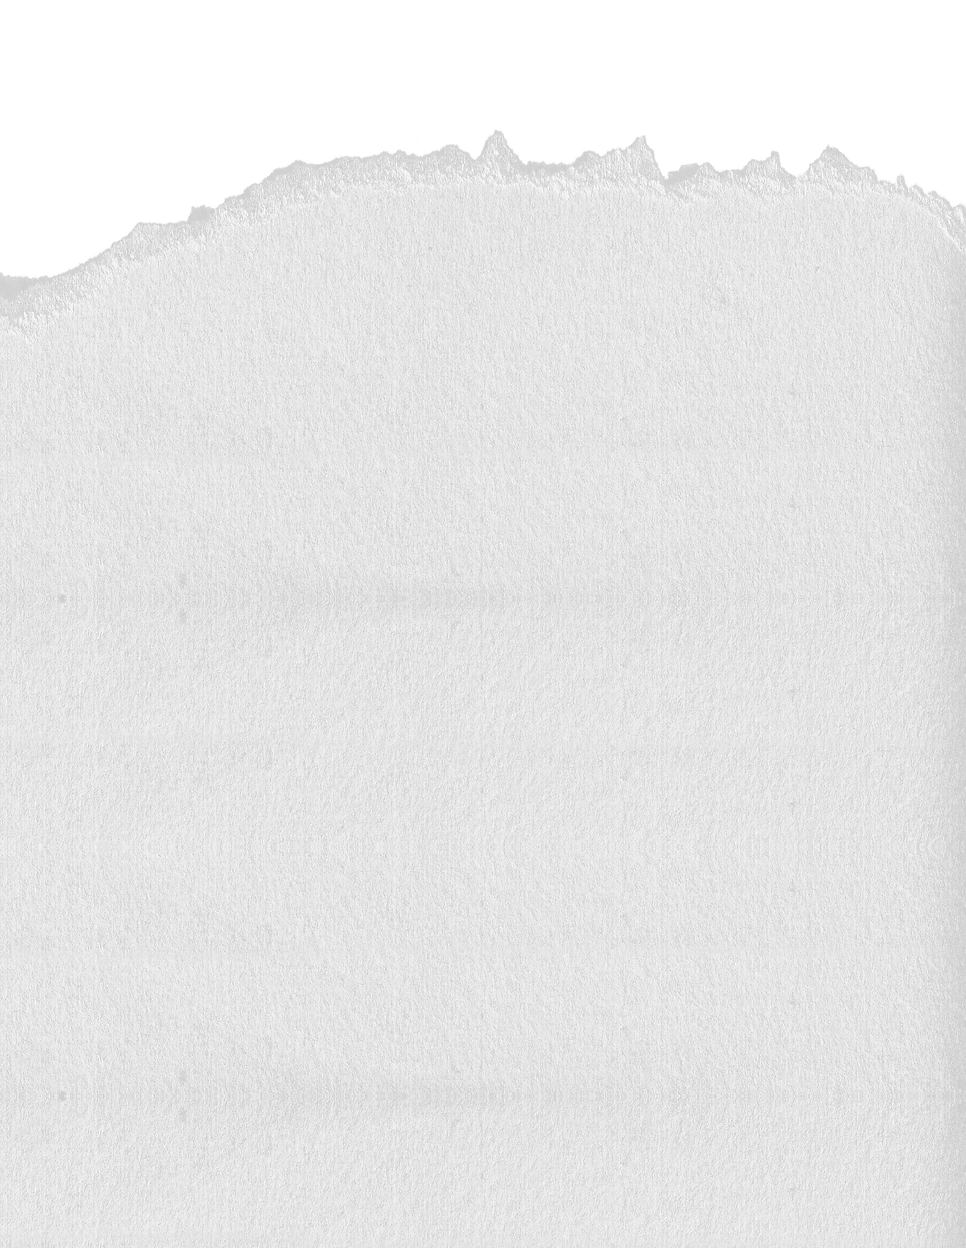 BACKGROUND PAGINAS.png